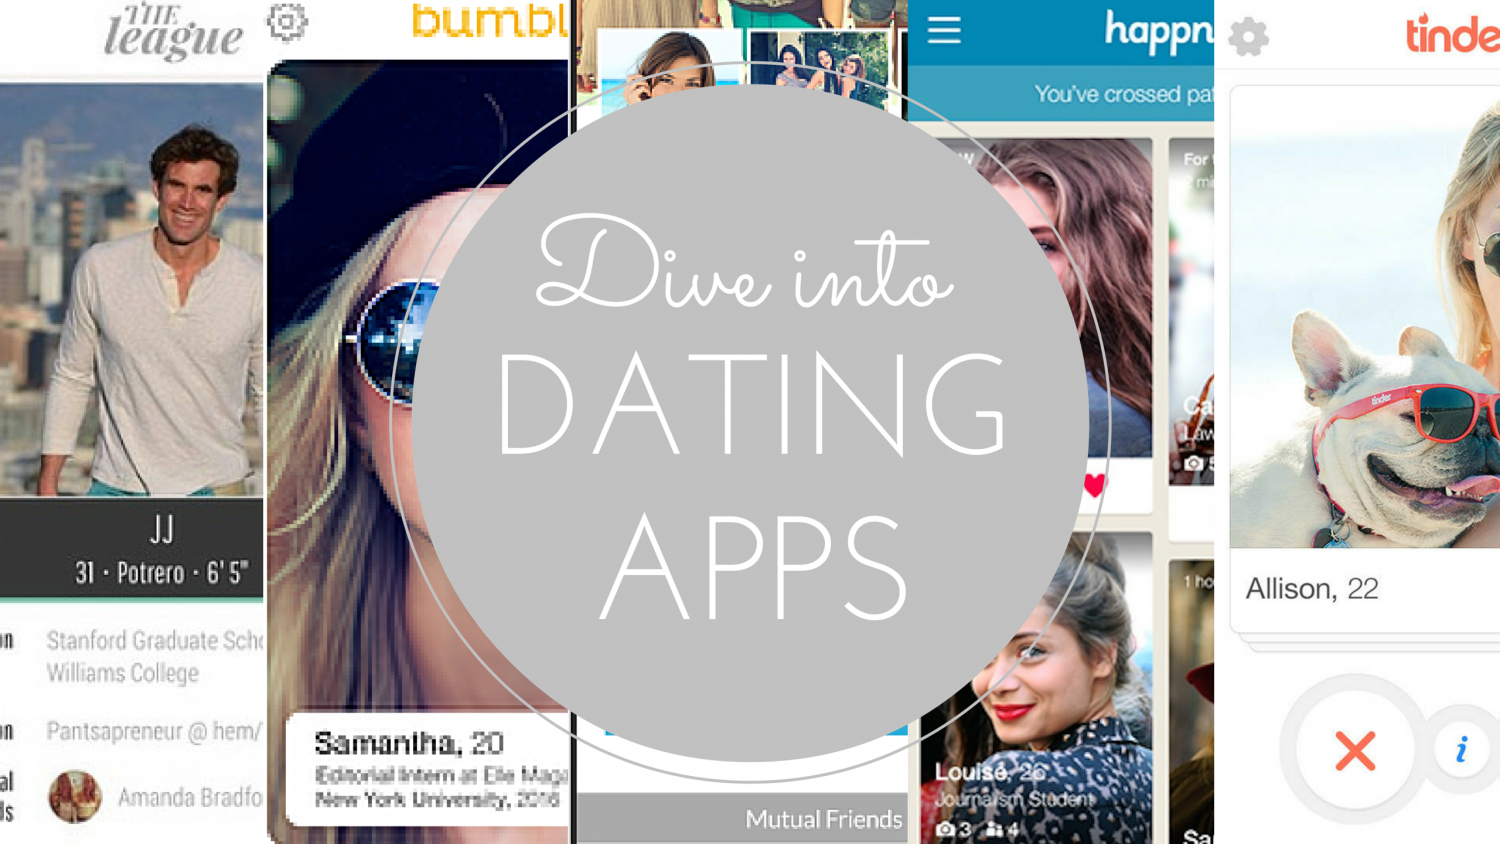 tinder, hinge, happn, bumble, the league, dating apps, dating, dating app dive